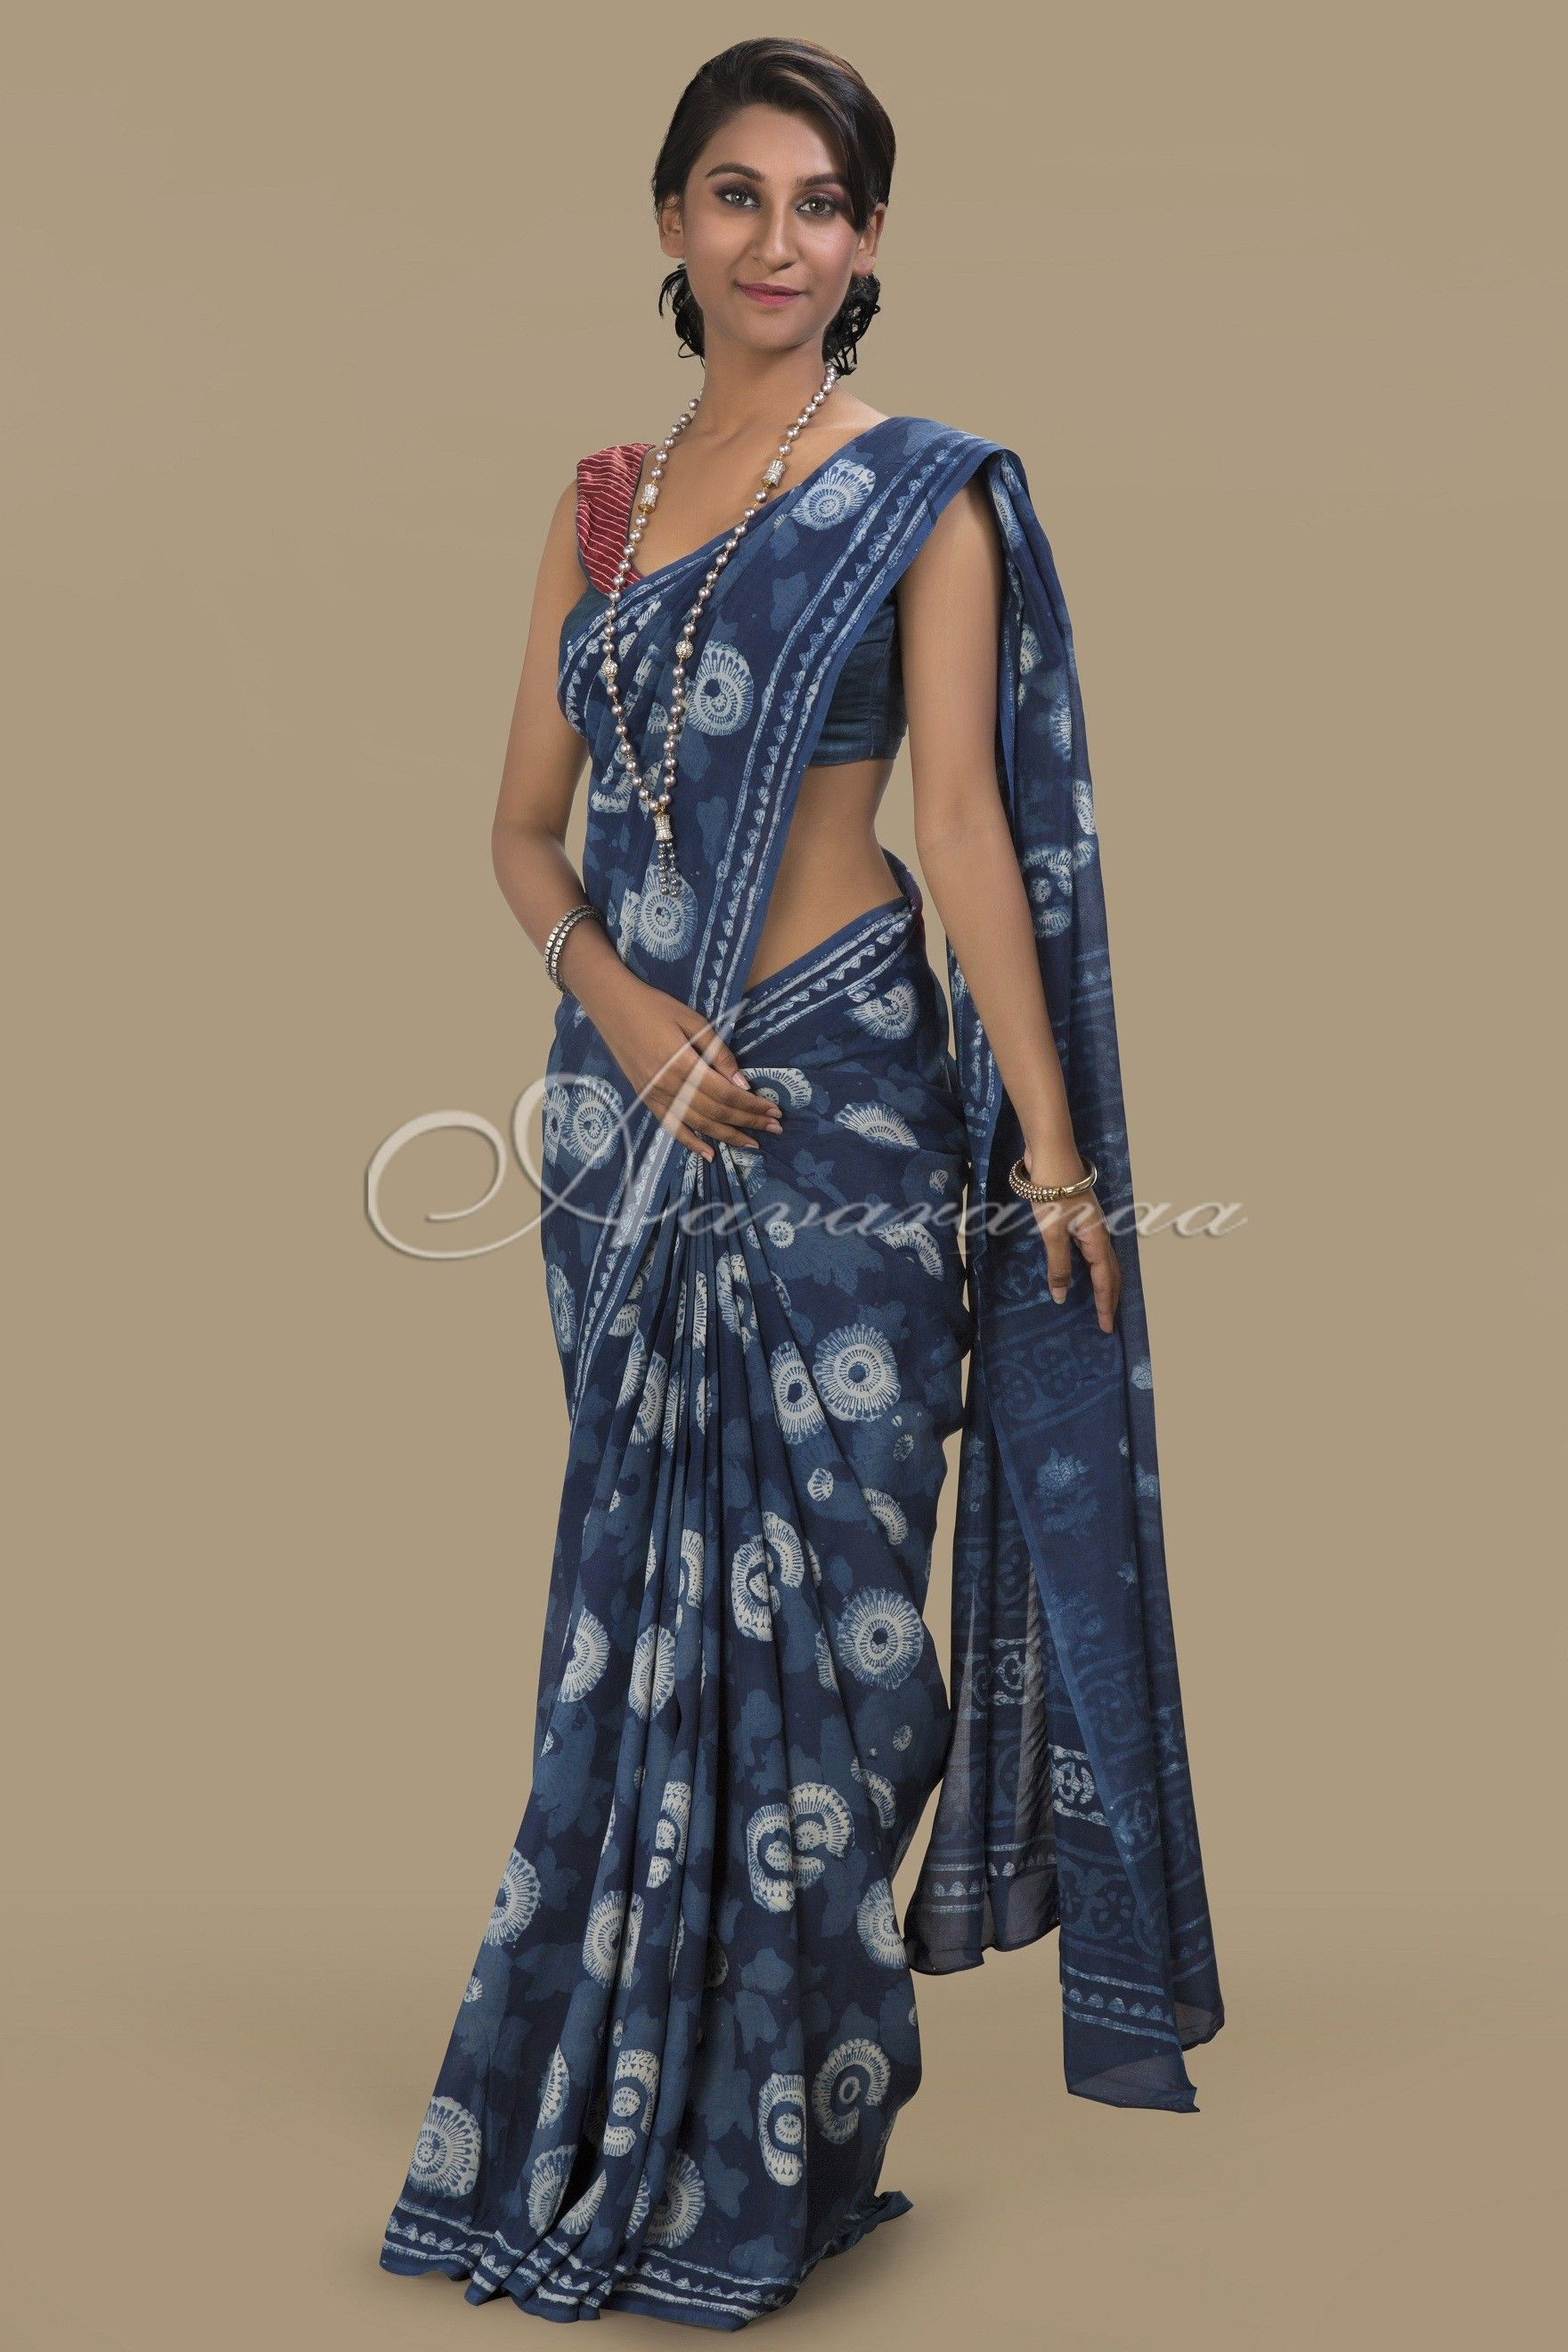 e0db995179 Indigo blue assam silk saree in 2019 | I love my India <3 | Assam ...